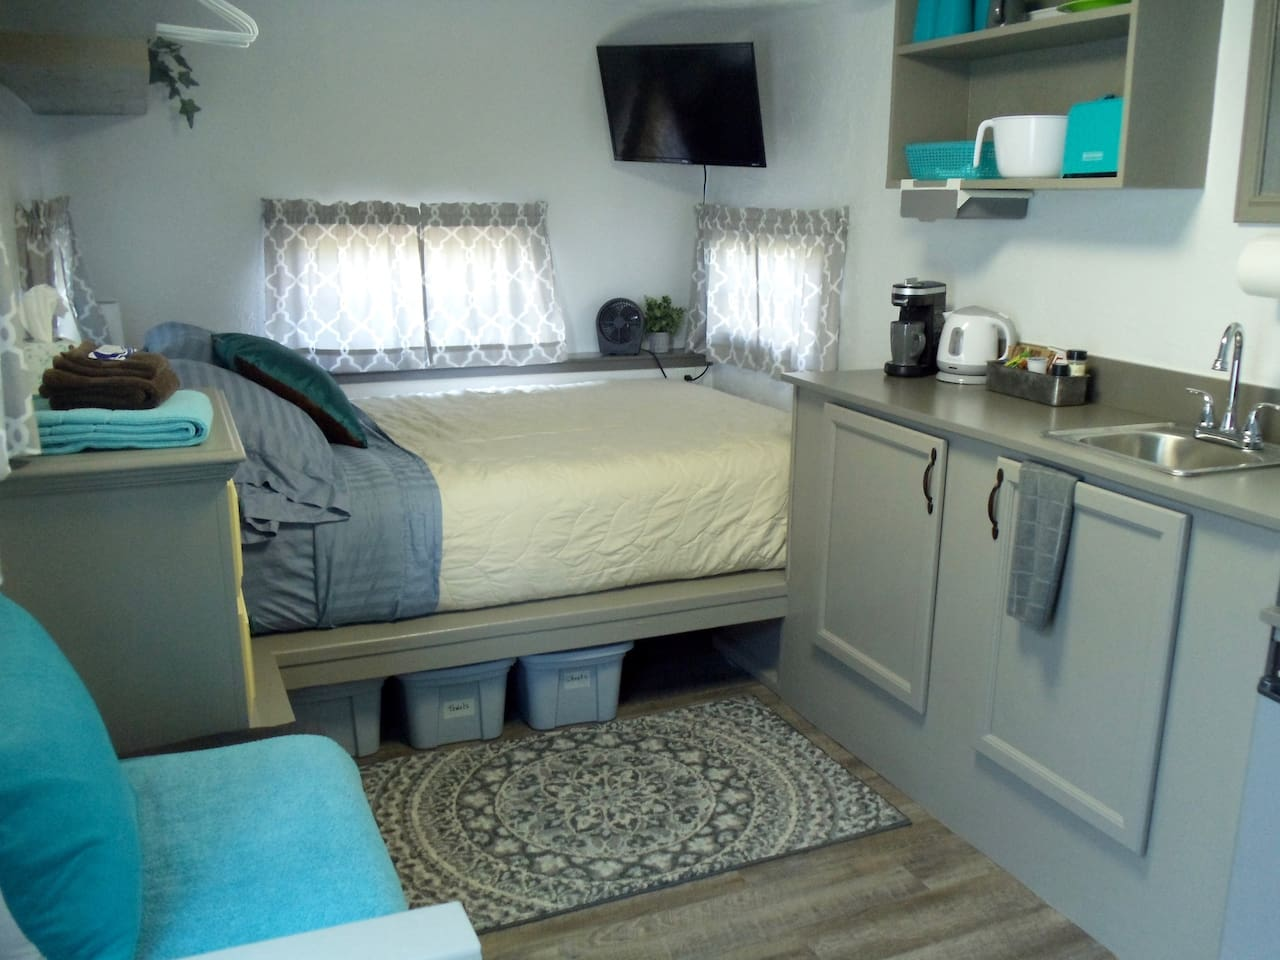 """Welcome to a truly luxurious desert glamping experience! Double size """"real"""" mattress. Kitchenette equipped with mini fridge, microwave, dishes, coffee maker, electric tea kettle, toaster, and hot plate. Internet and TV with streaming video services."""